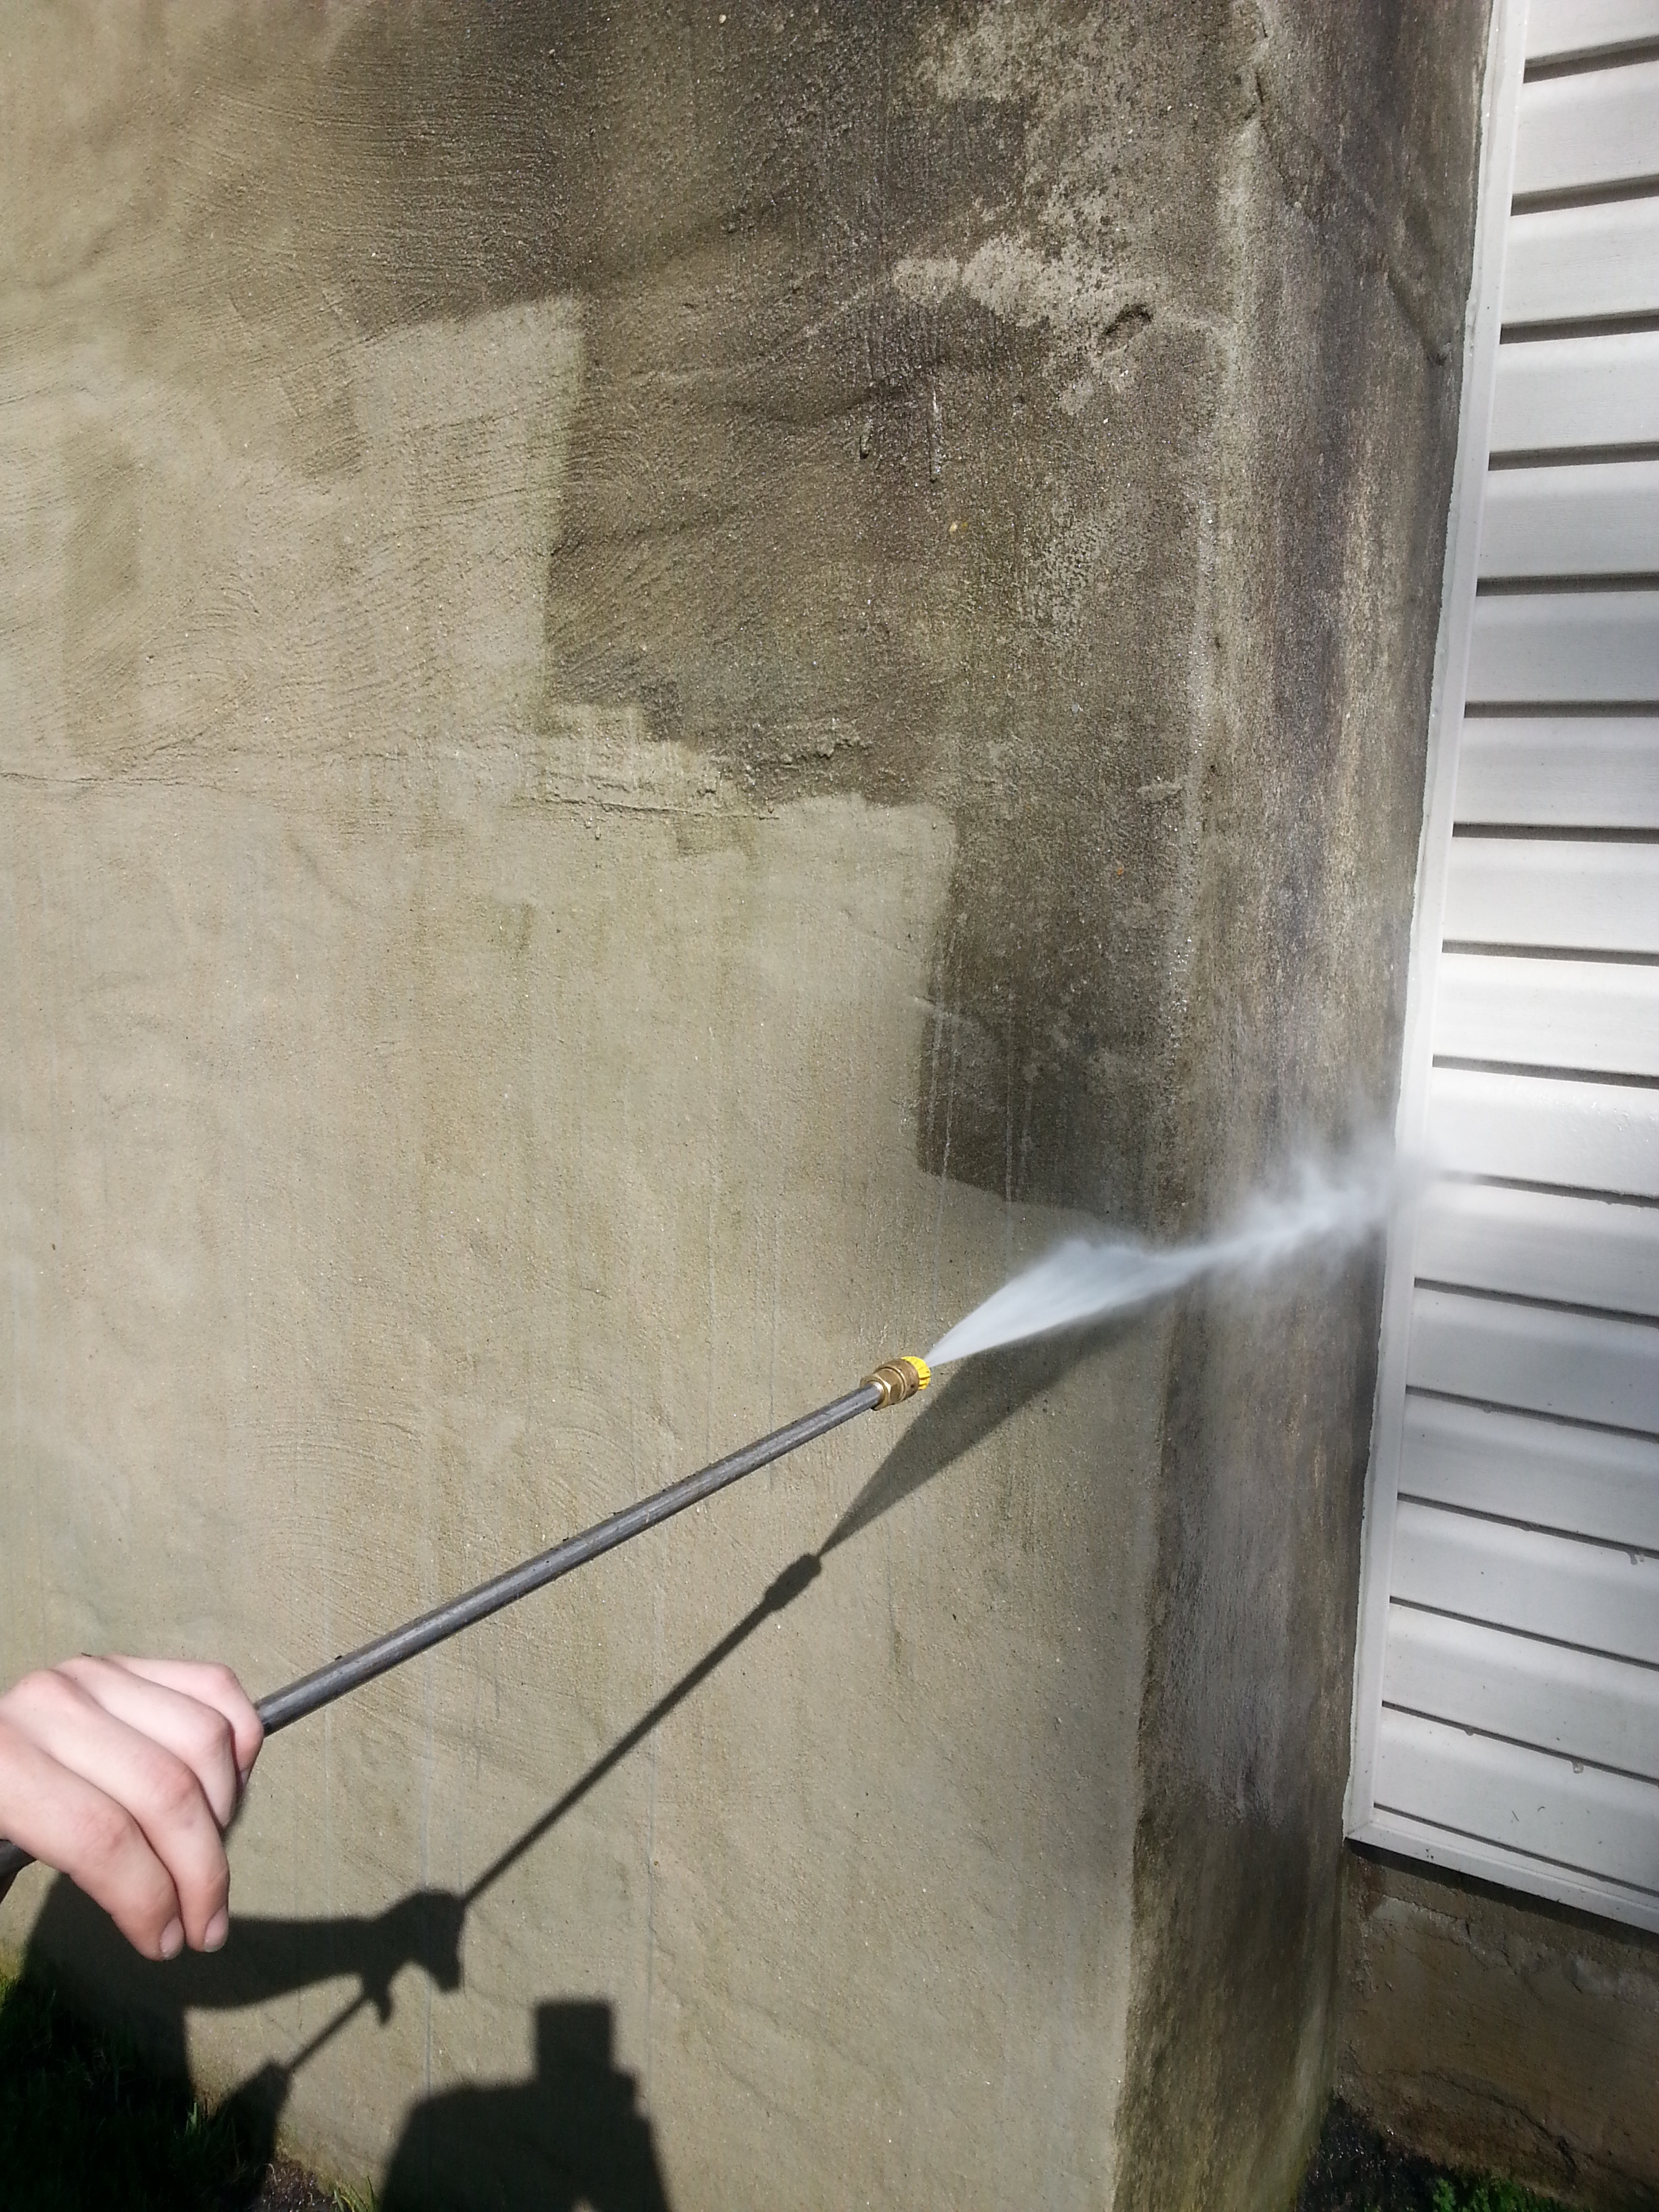 Call us to pressure wash your home!